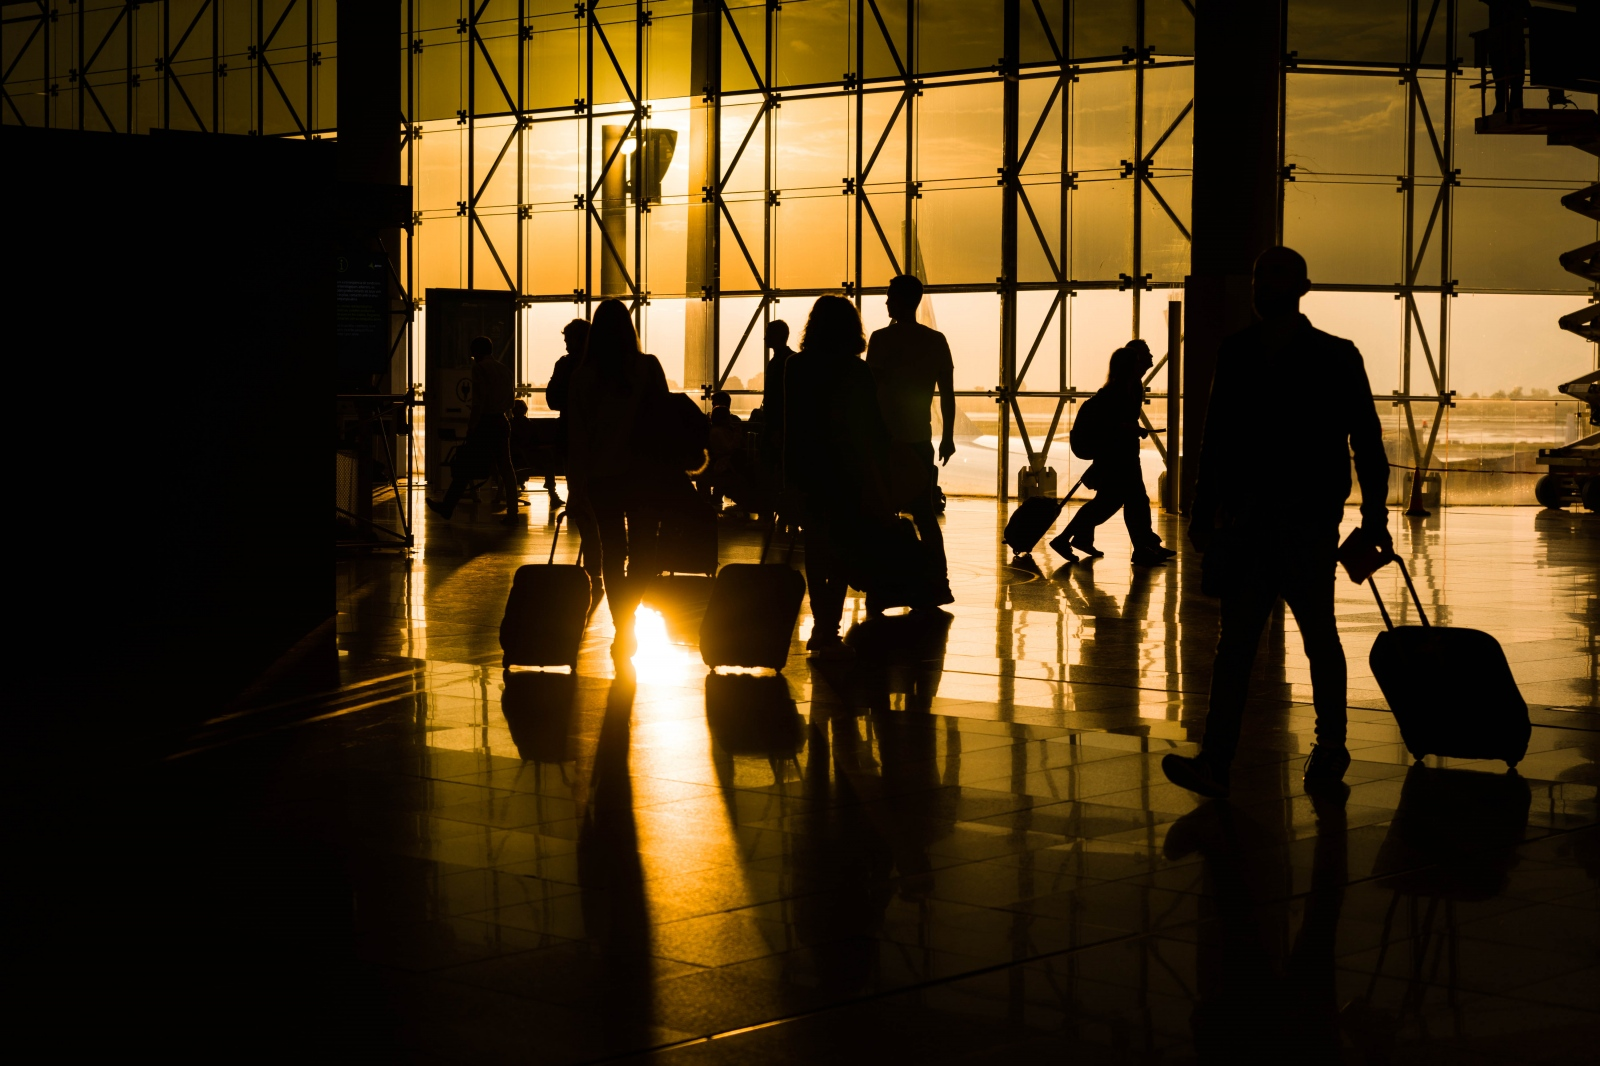 Passengers in the early morning at the Barcelona El Prat Airport. Barcelona, October 19, 2018.